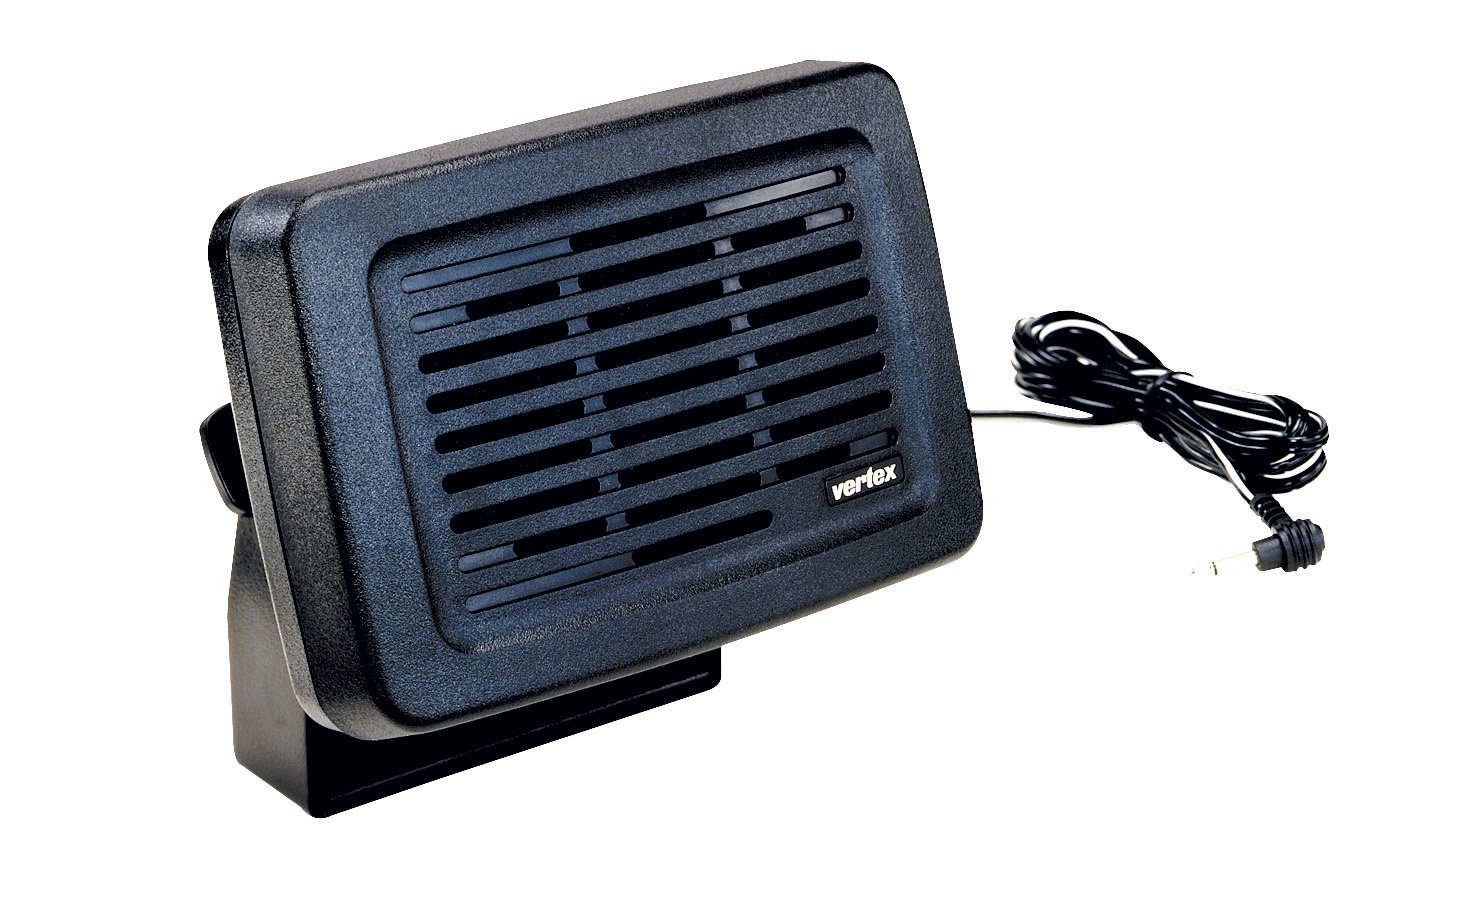 Yaesu Original 100 12 Watt External Speaker